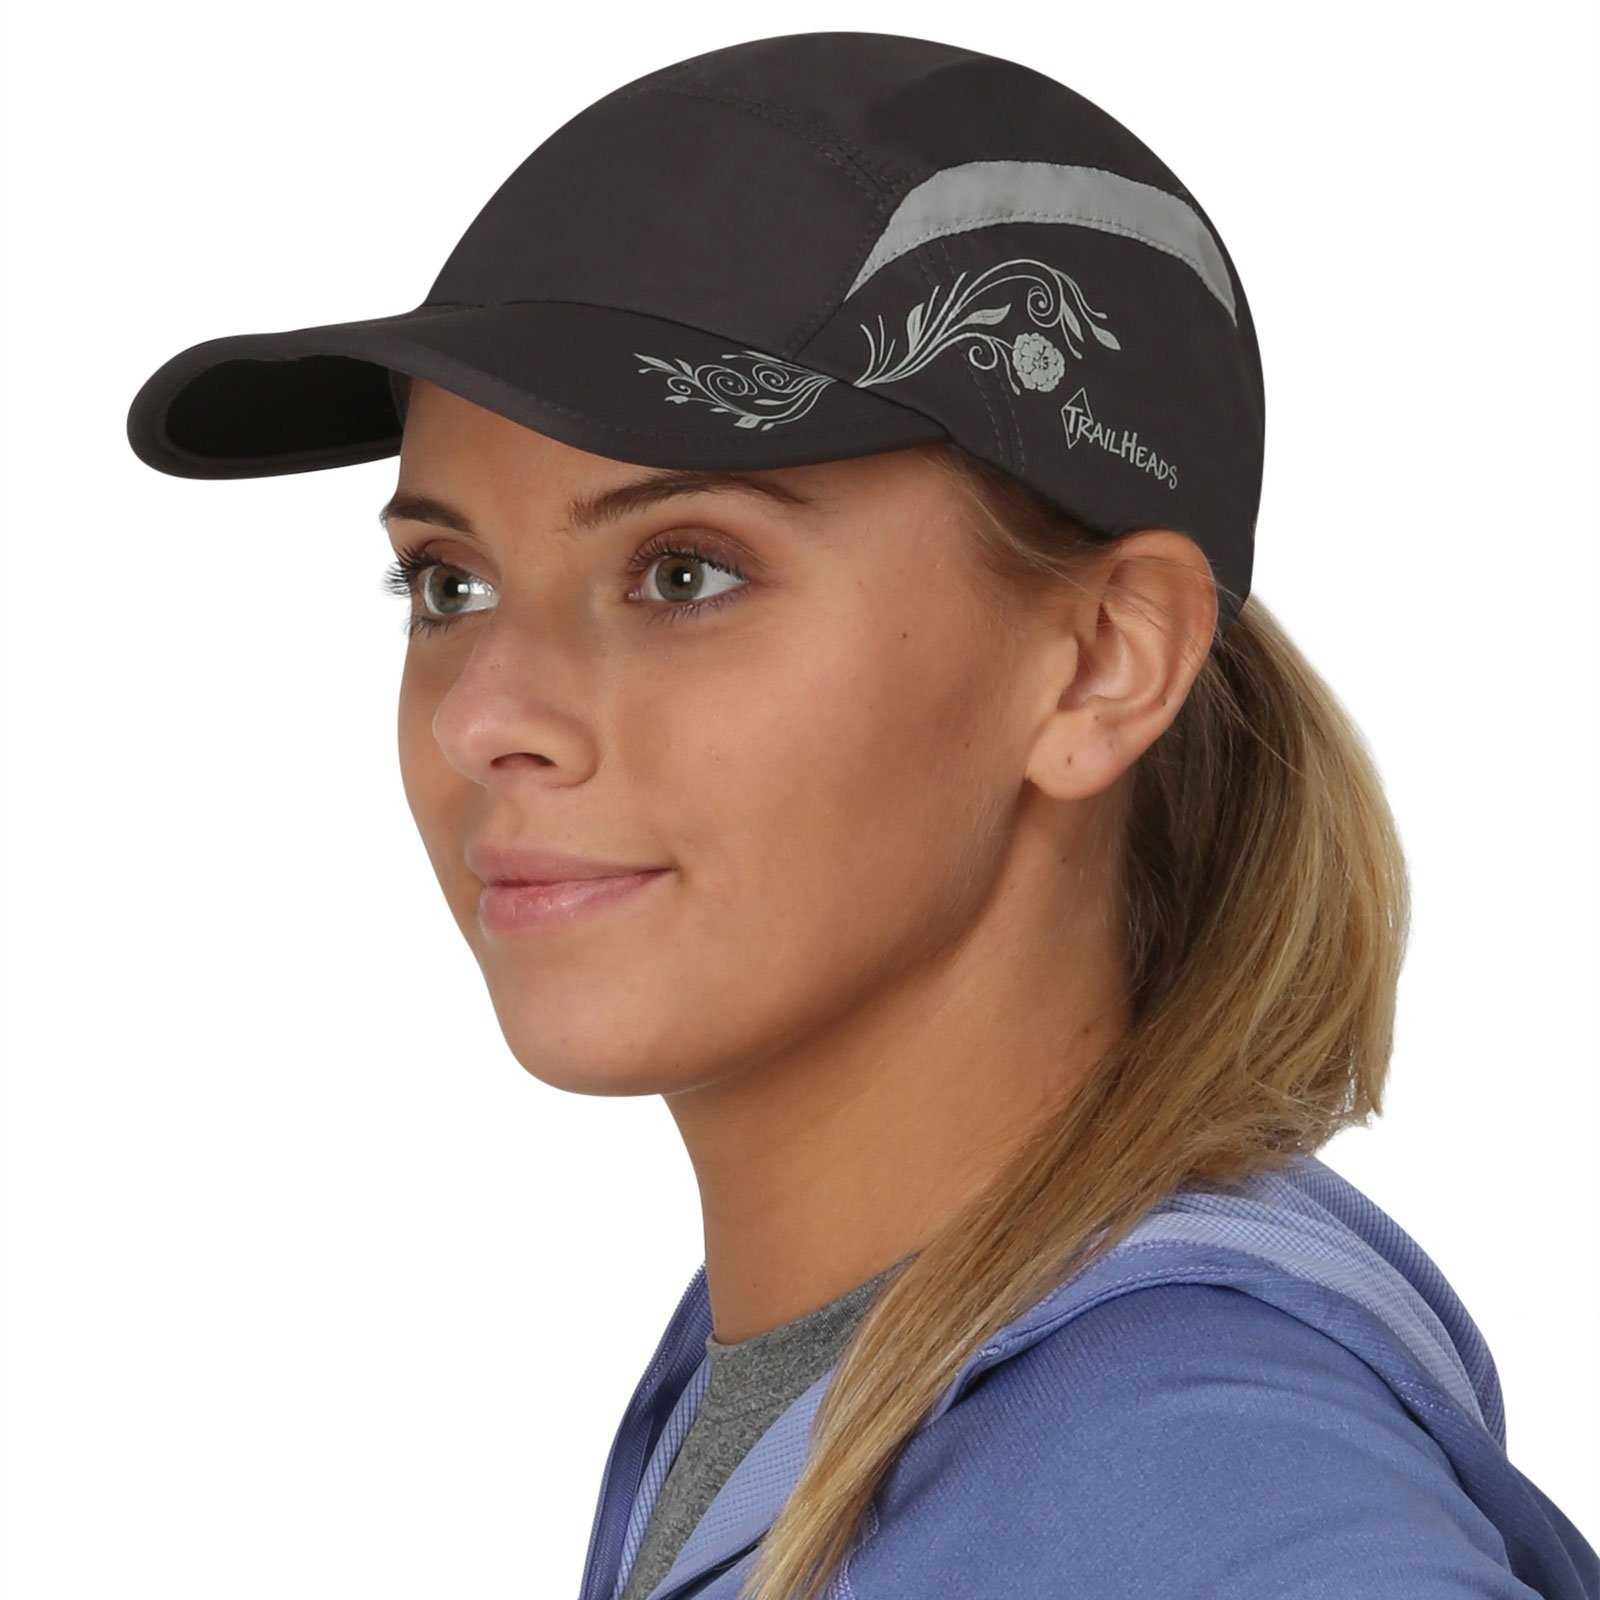 TrailHeads Lightweight Travel Hat | Summer Running Cap for Women | Folding Hat with UV Protection - Medium/Large by TrailHeads (Image #1)